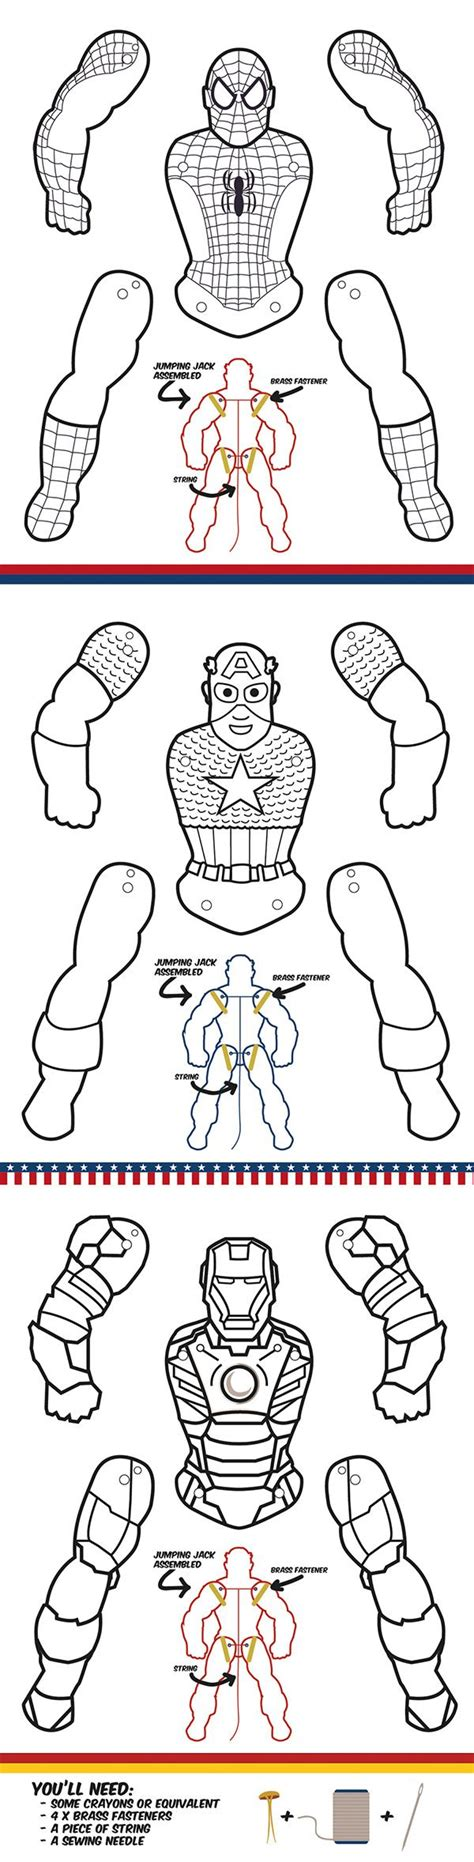 printable pictures jumping jacks 30 best images about superheroes jumping jacks on